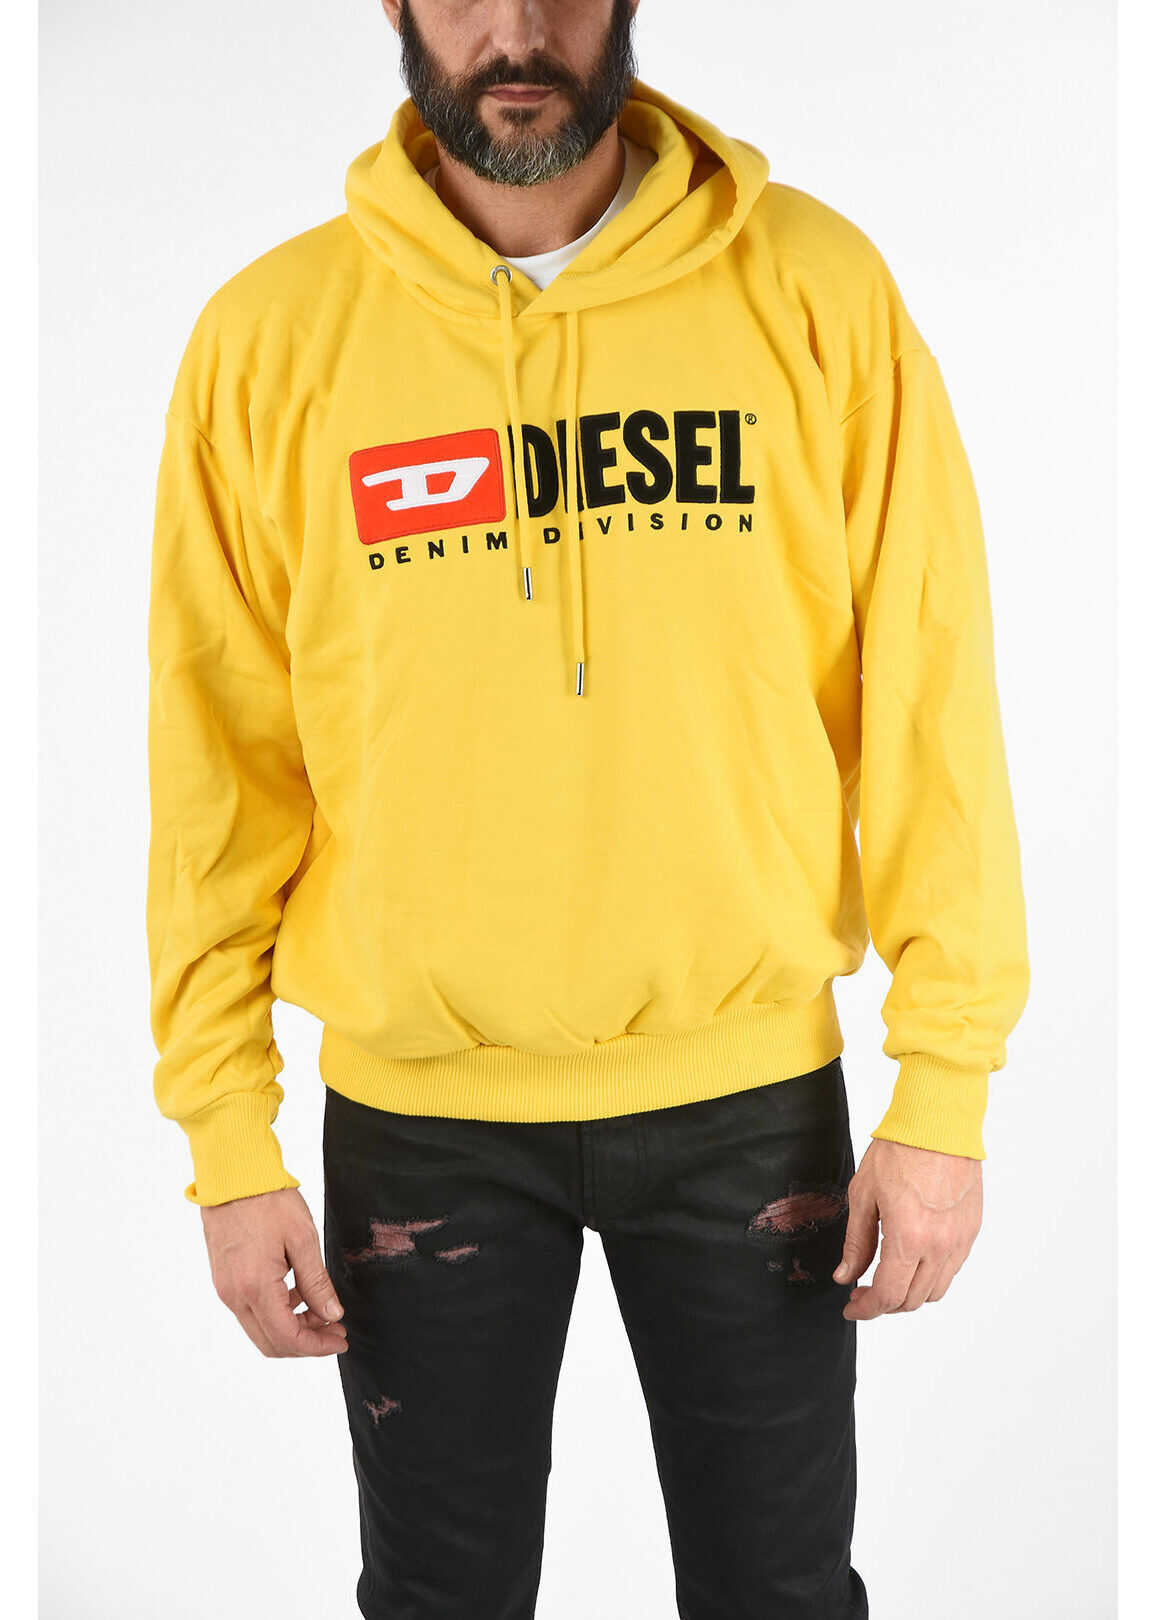 Diesel Logo-Embroidered S-DIVISION Sweatshirt with Hood YELLOW imagine